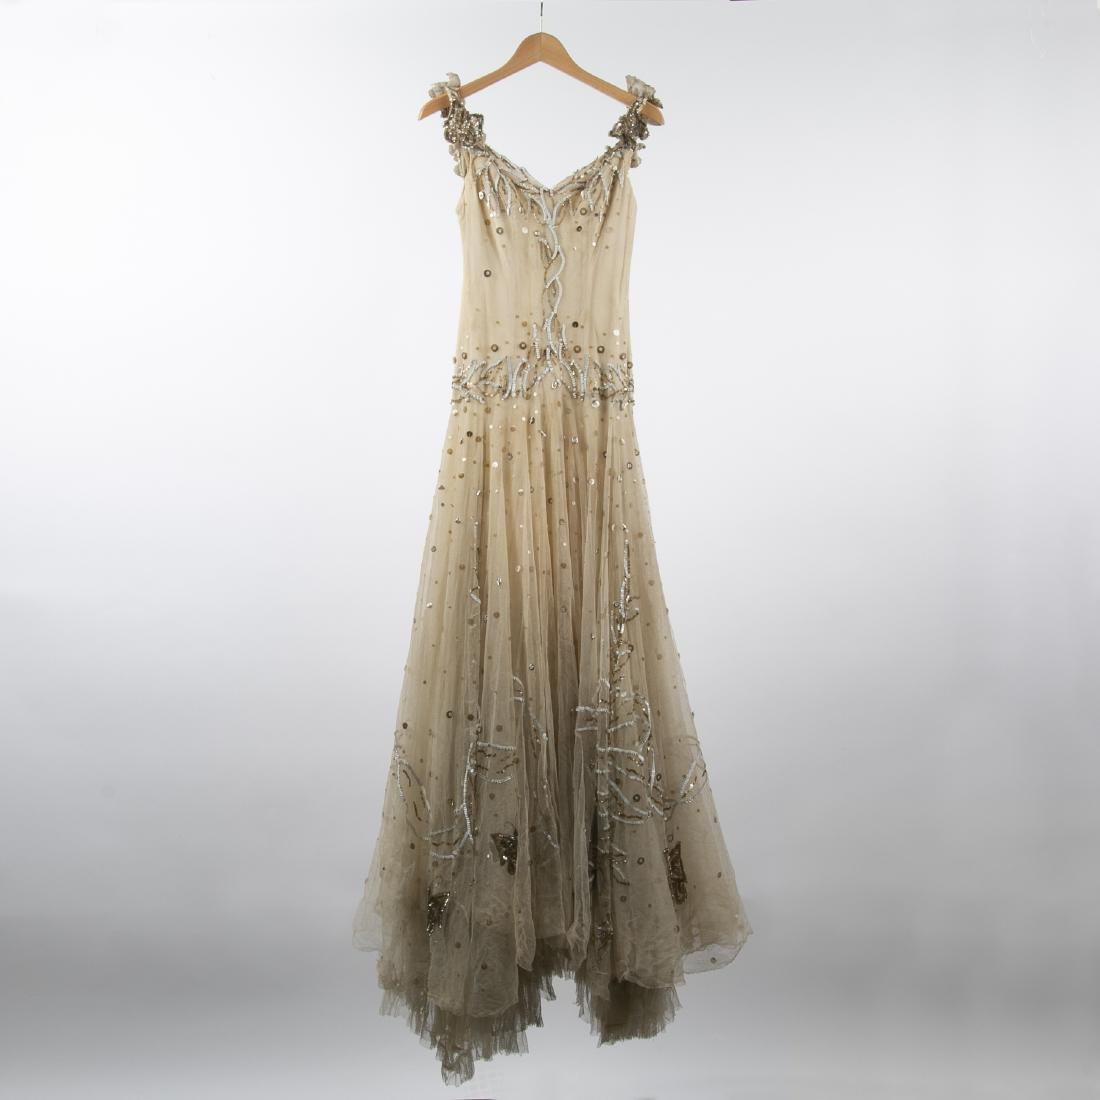 KATHRYN KUHN TULLE EMBELLISHED GOWN, C. 1940'S